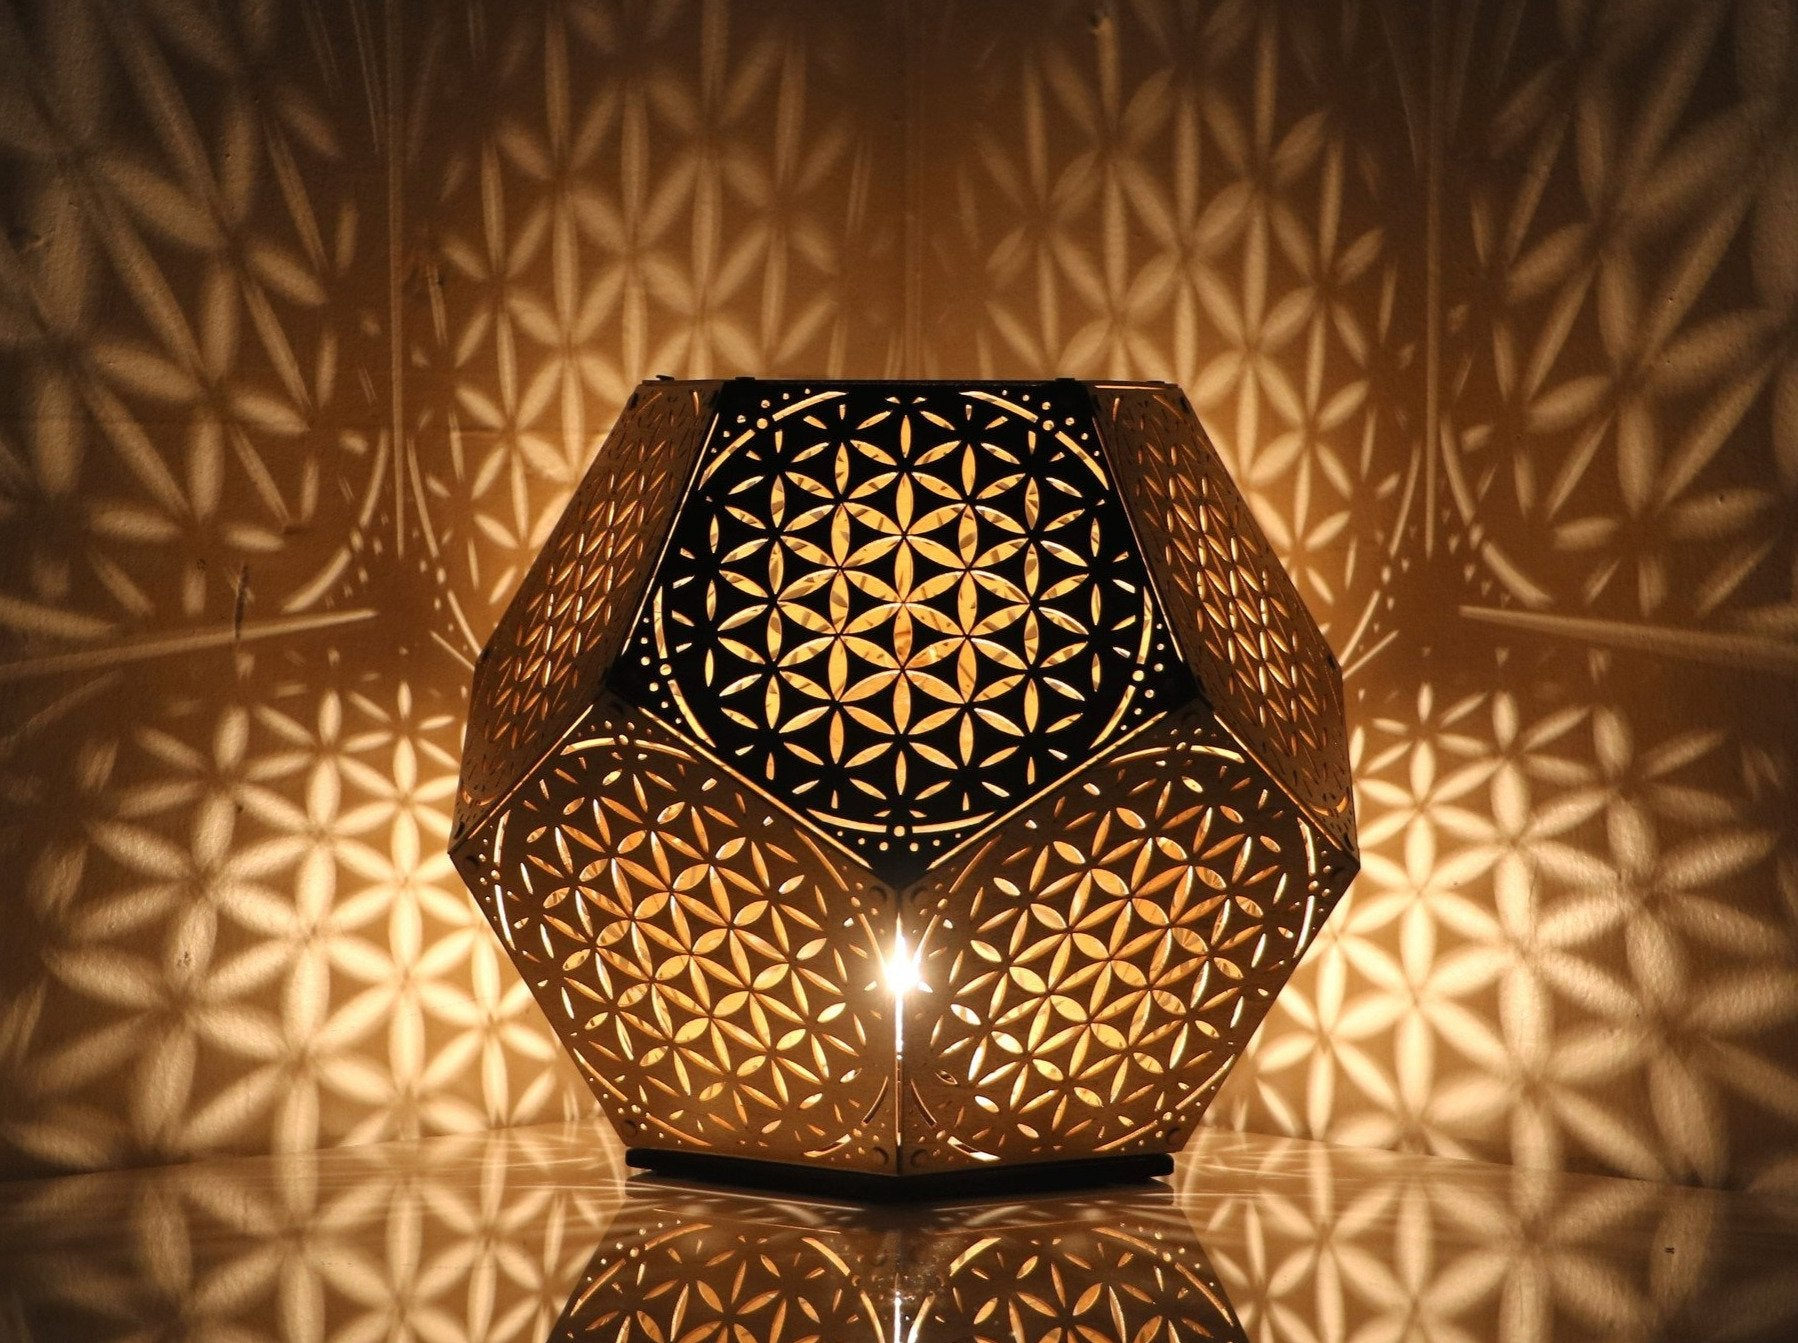 Flower of life dodecahedron table light cozo flower of life dodecahedron table light arubaitofo Gallery